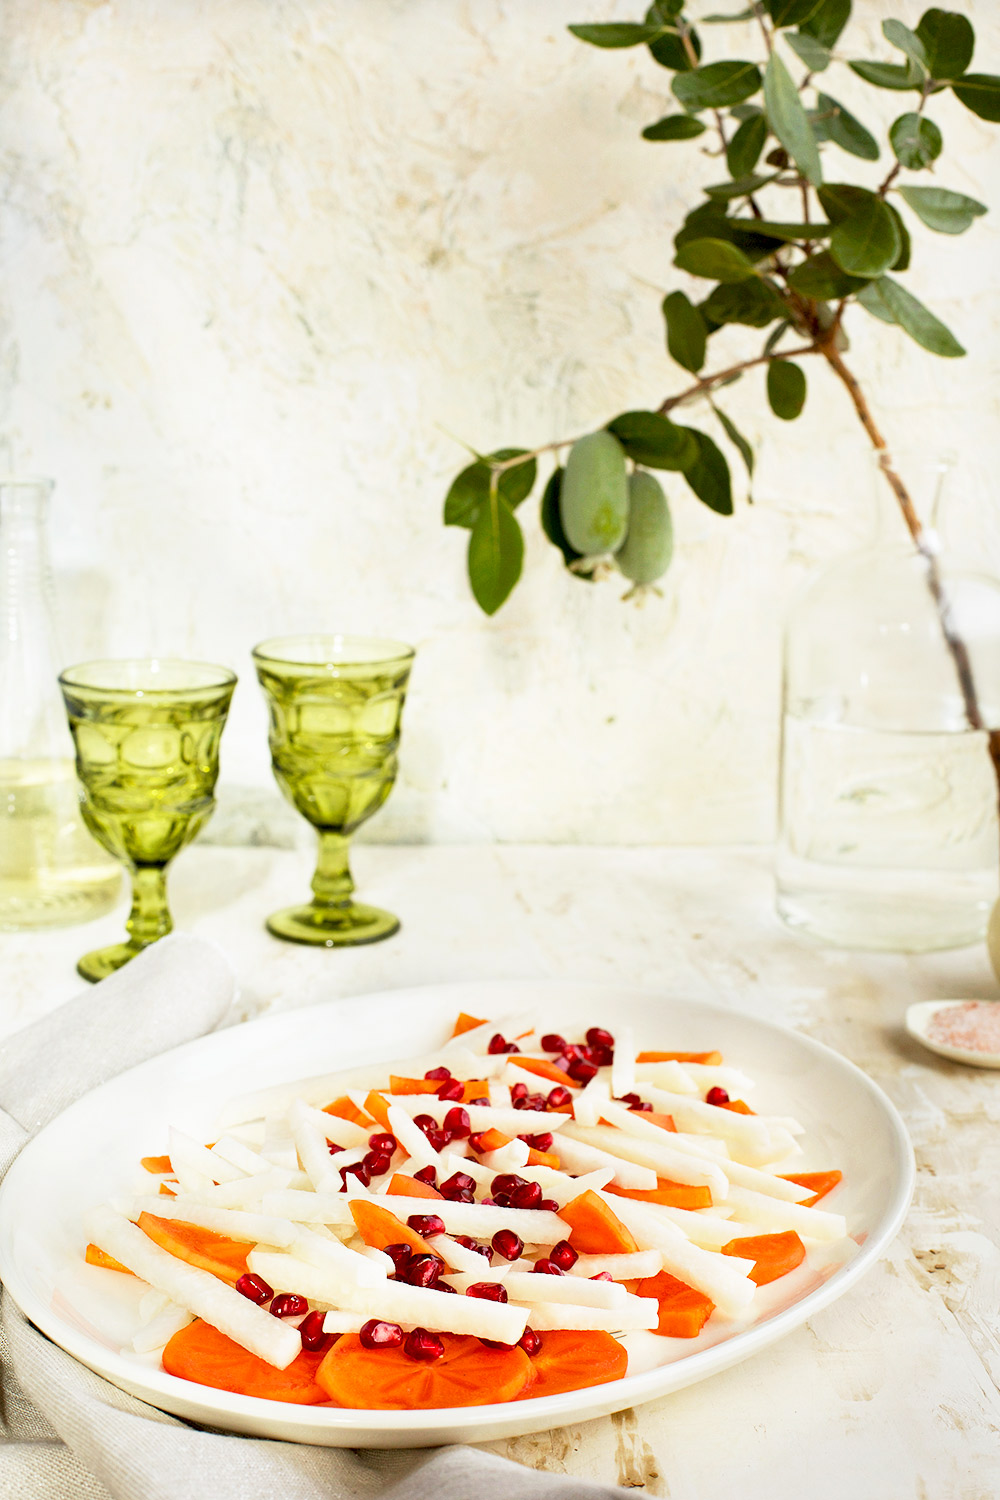 Jicama Persimmon Pomegranate Salad with Guava Chevre Vinaigrette - #gluten free - CaliZona There is a lot of texture going on in this dish. The guava chevre vinaigrette has a wonderful creaminess with a unique floral quality from the guavas.